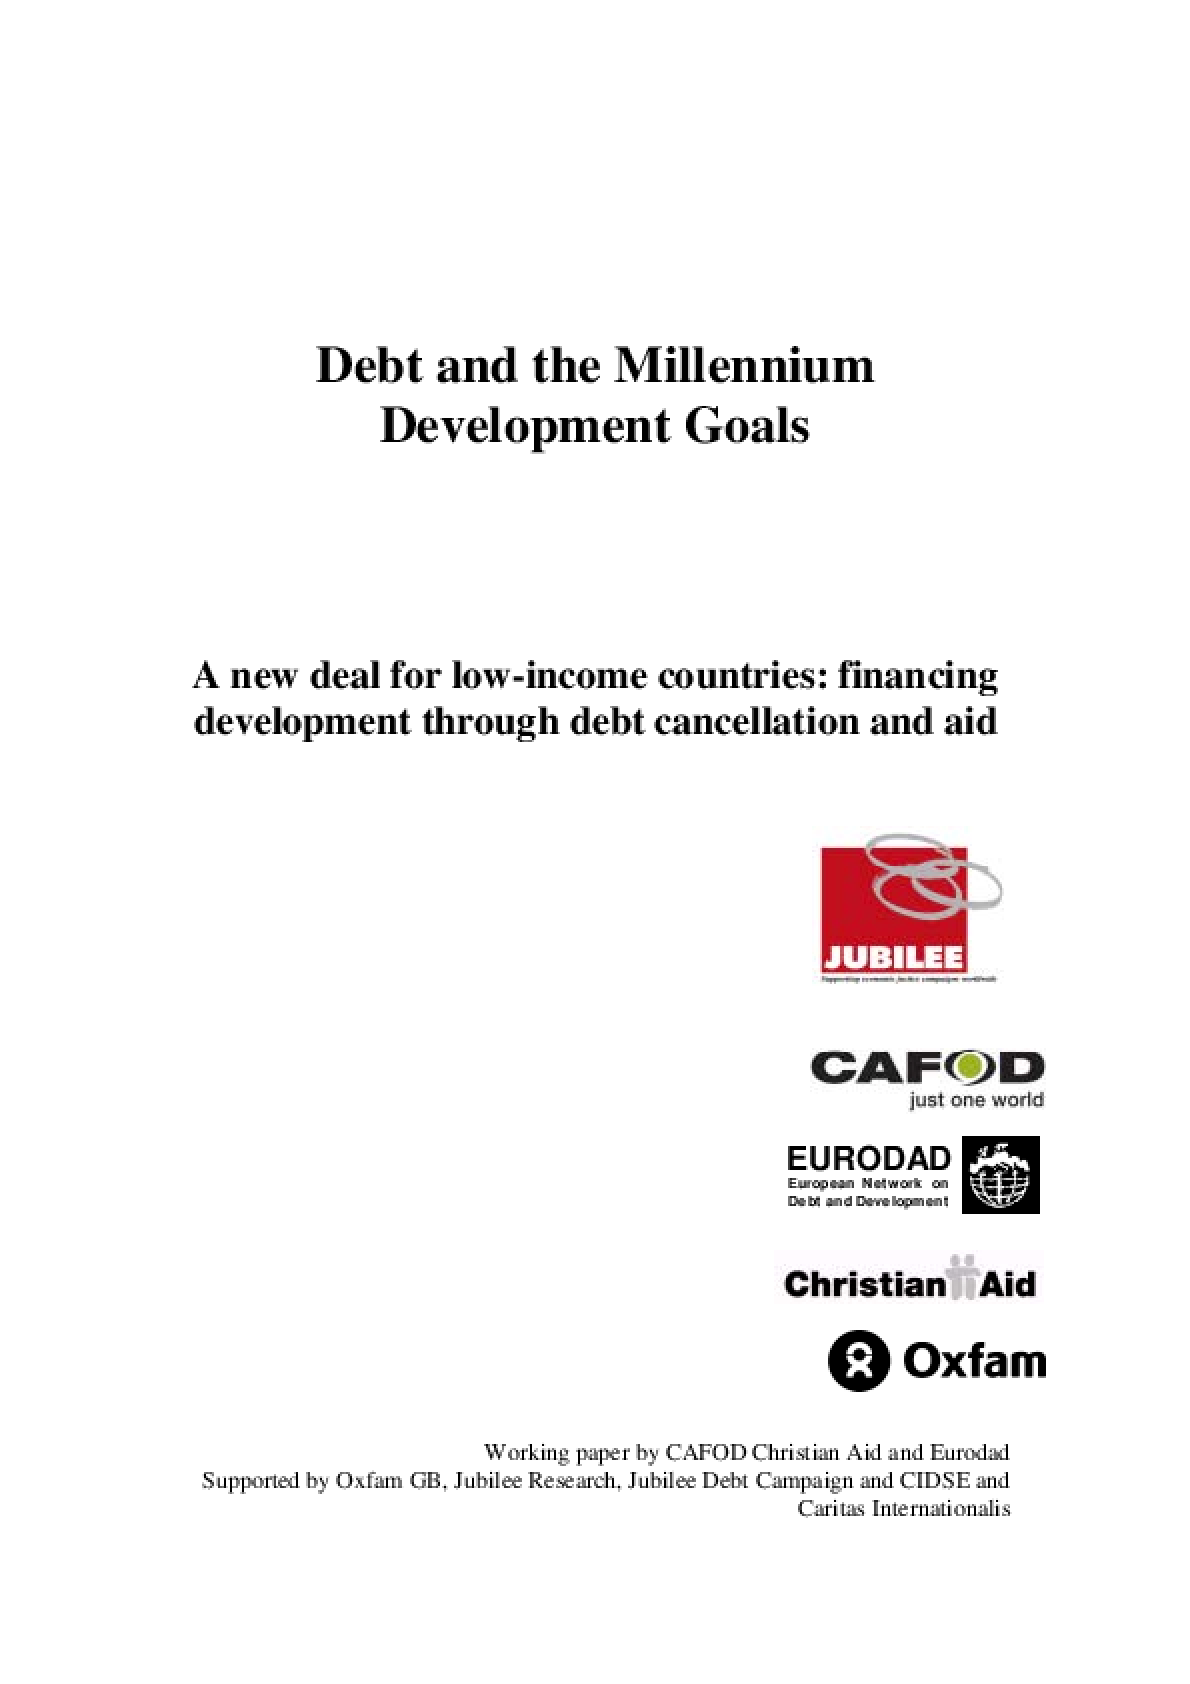 Debt and the Millennium Development Goals: A New Deal for Low-income Countries